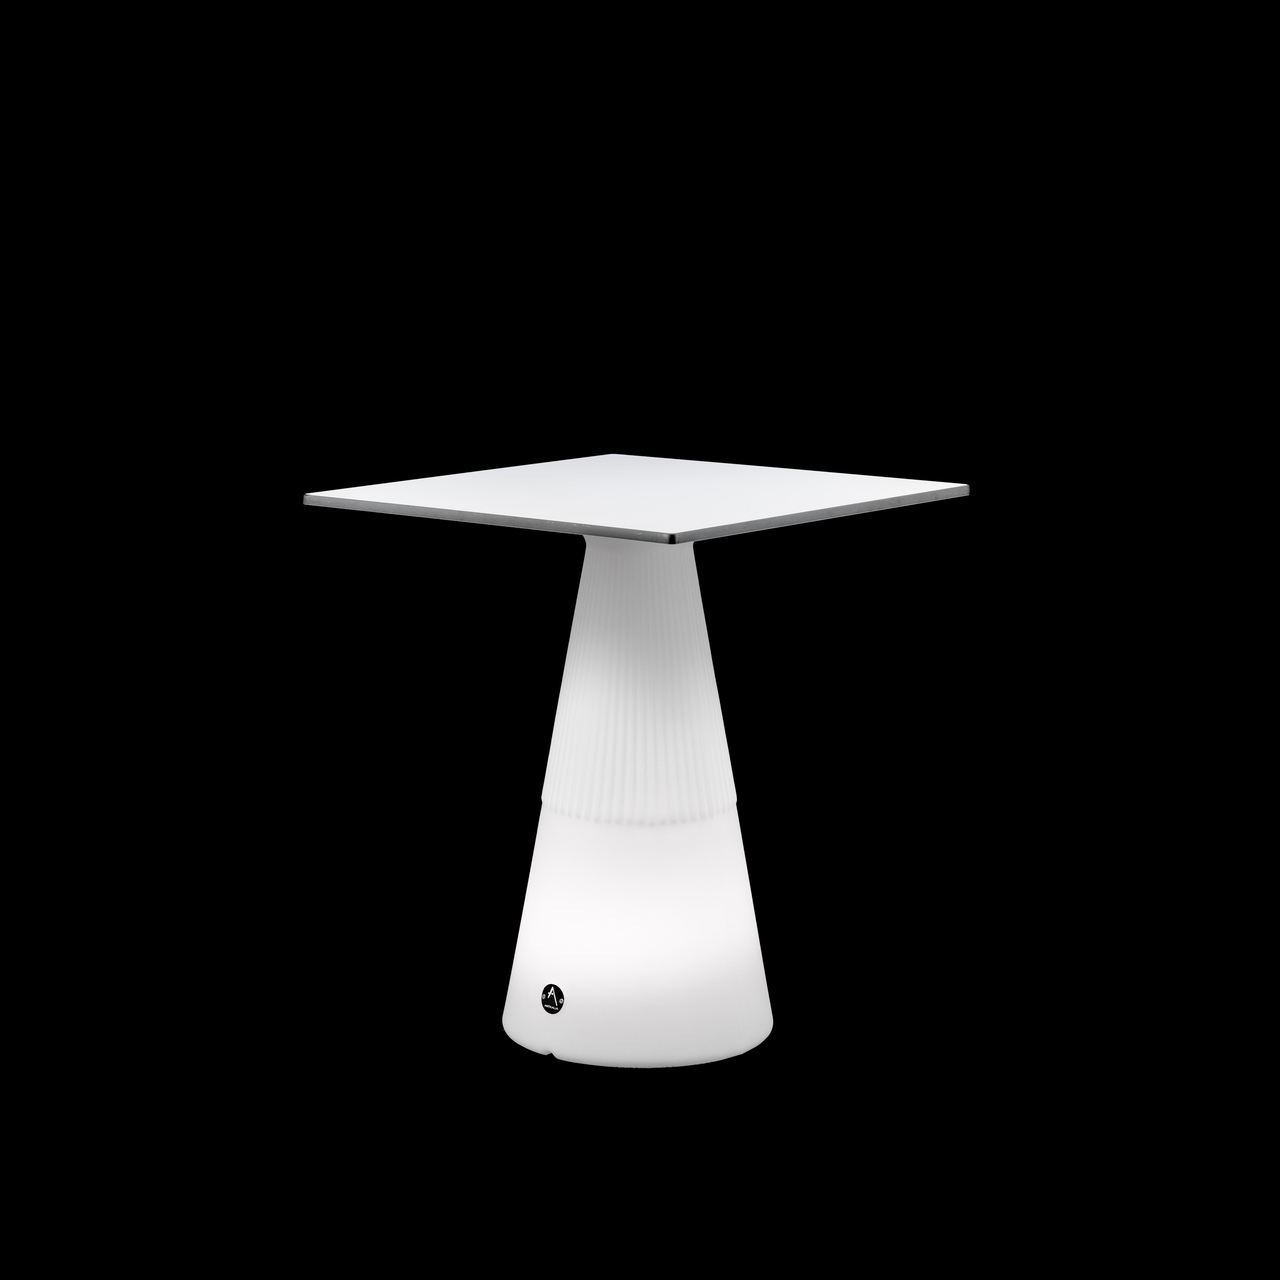 Provence Squara-Cordless Nomad Dining Table Lamp | Artkalia